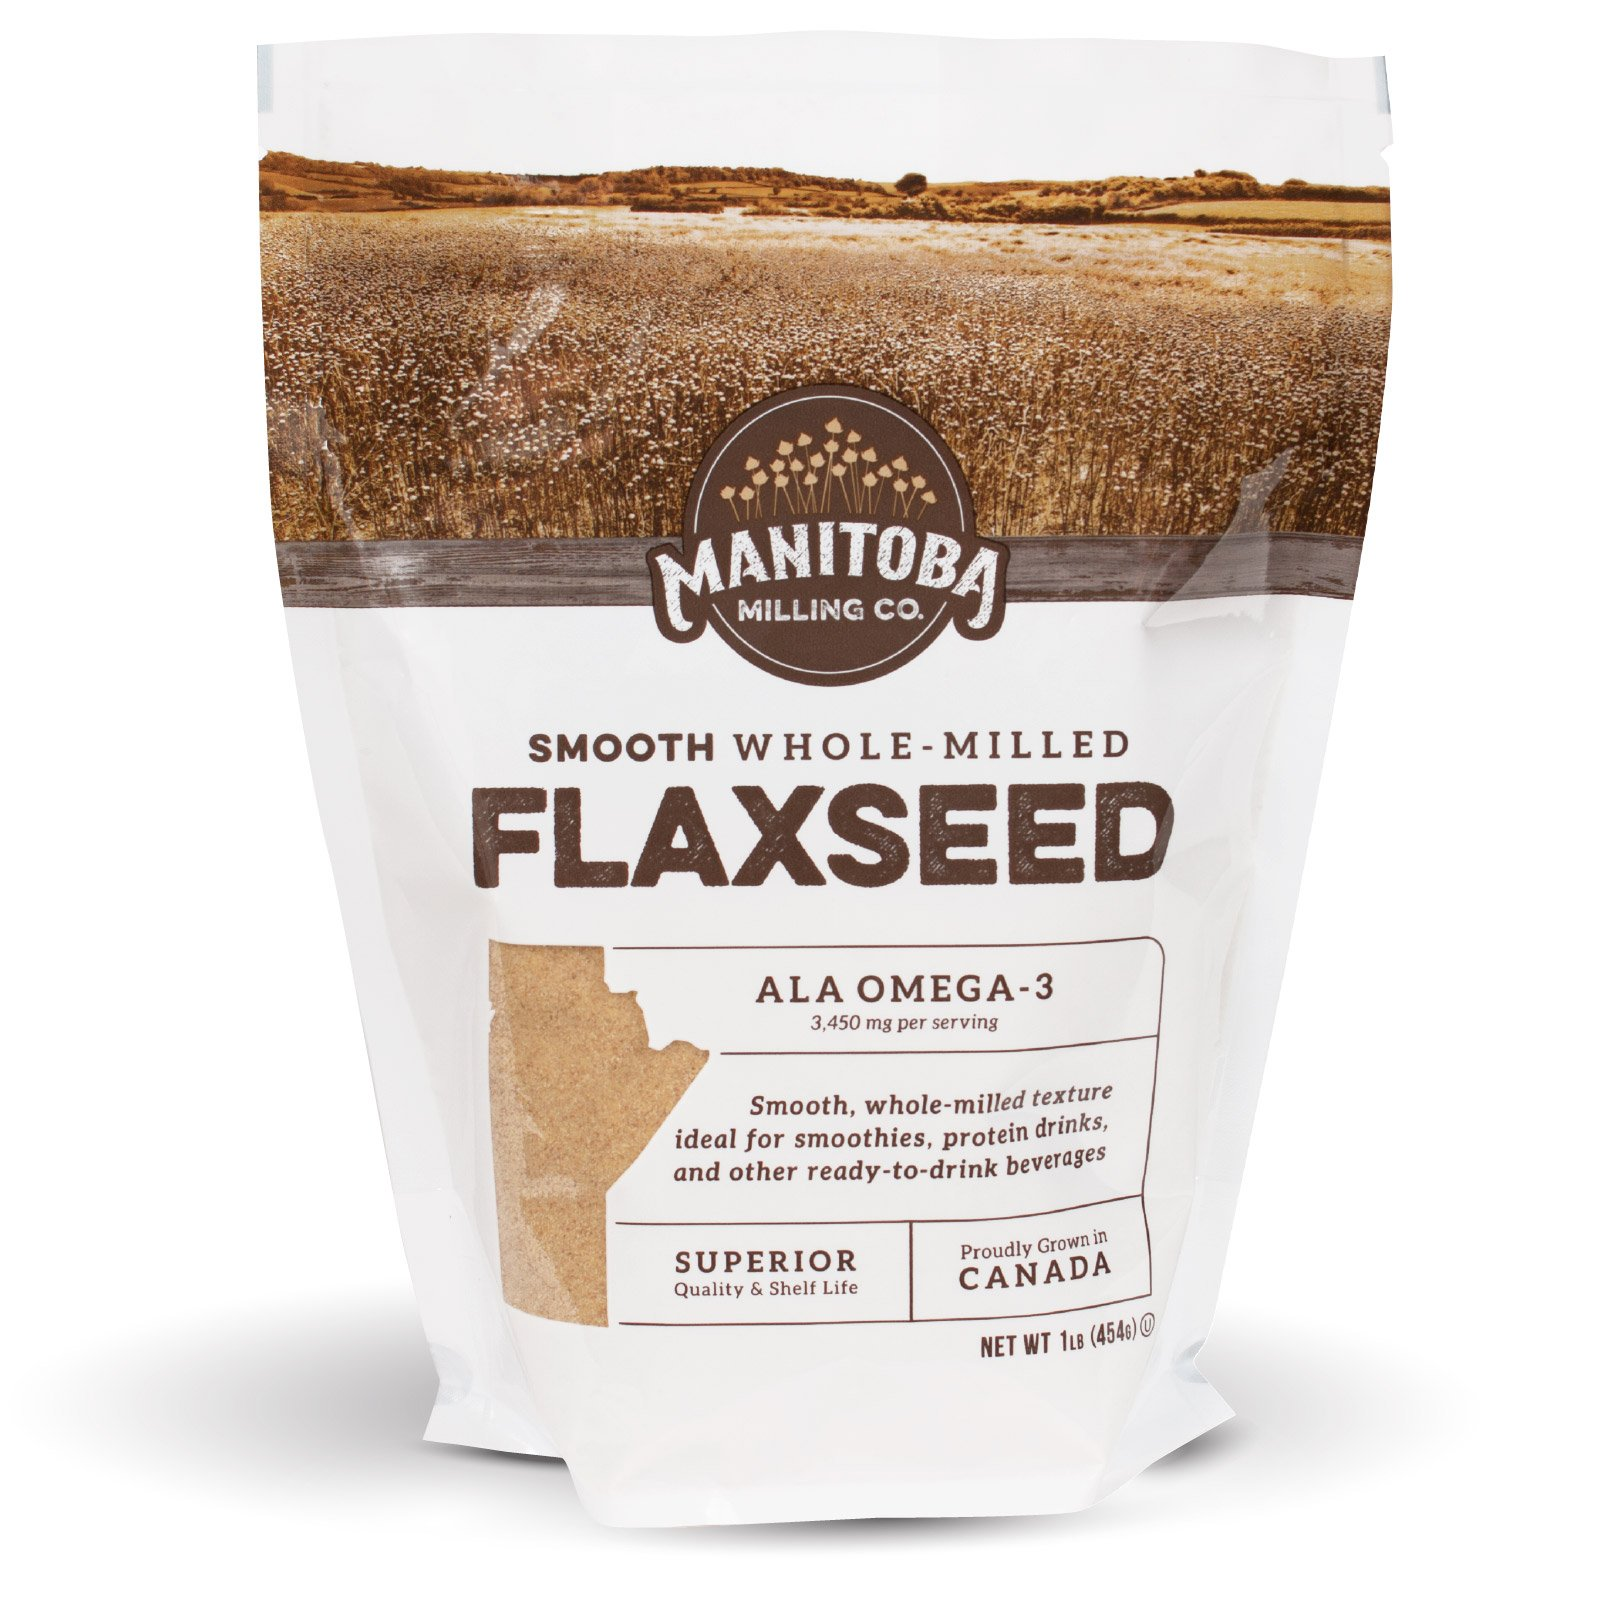 Canadian Golden Flaxseed, Milled Flaxseed (16 oz)